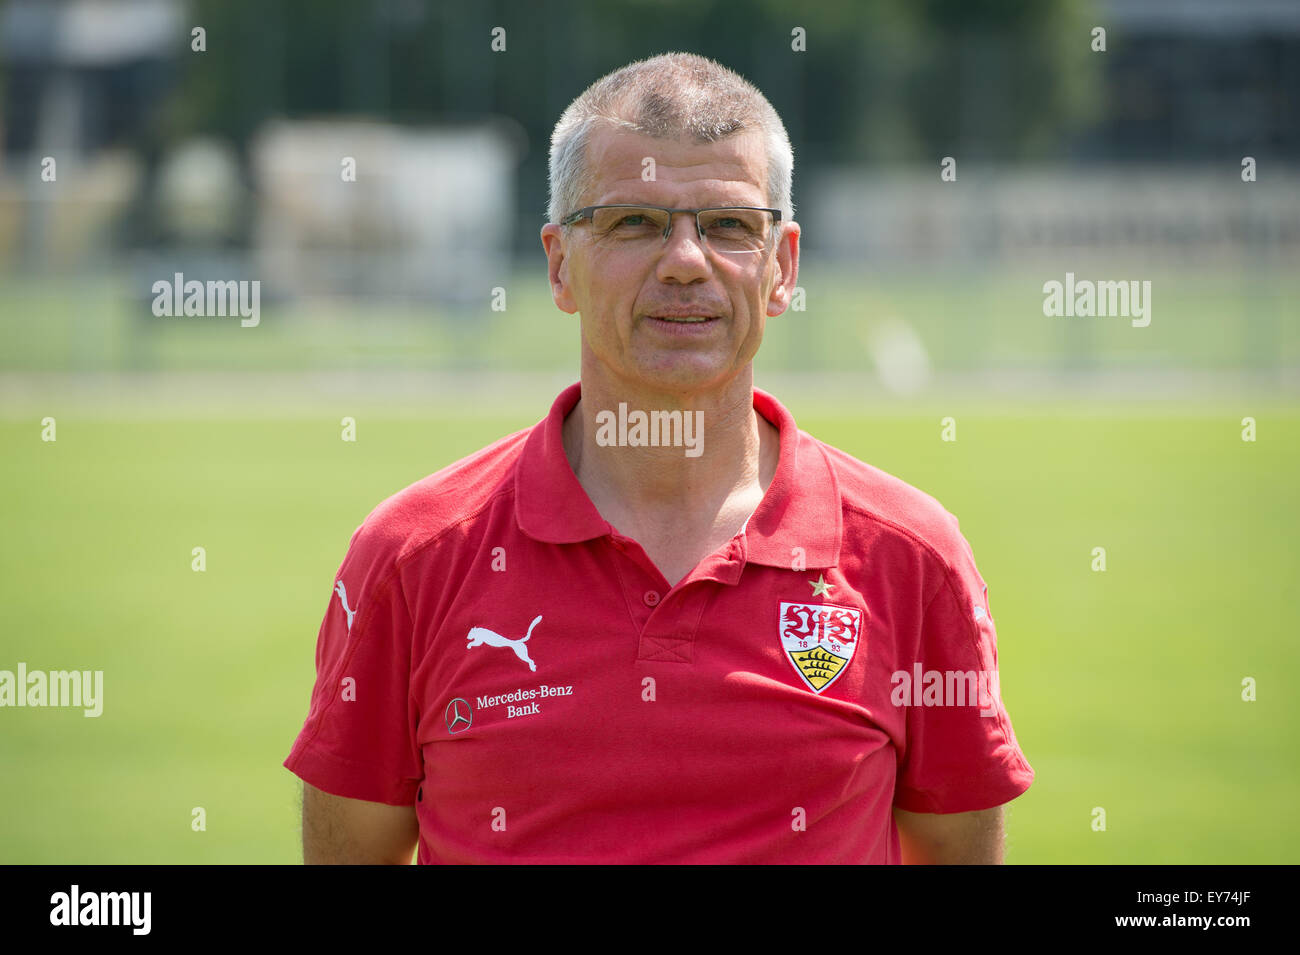 German Soccer Bundesliga 2015/16 - Photocall of VfB Stuttgart on 17 July 2015 in Stuttgart, Germany: Kitman Michael - Stock Image